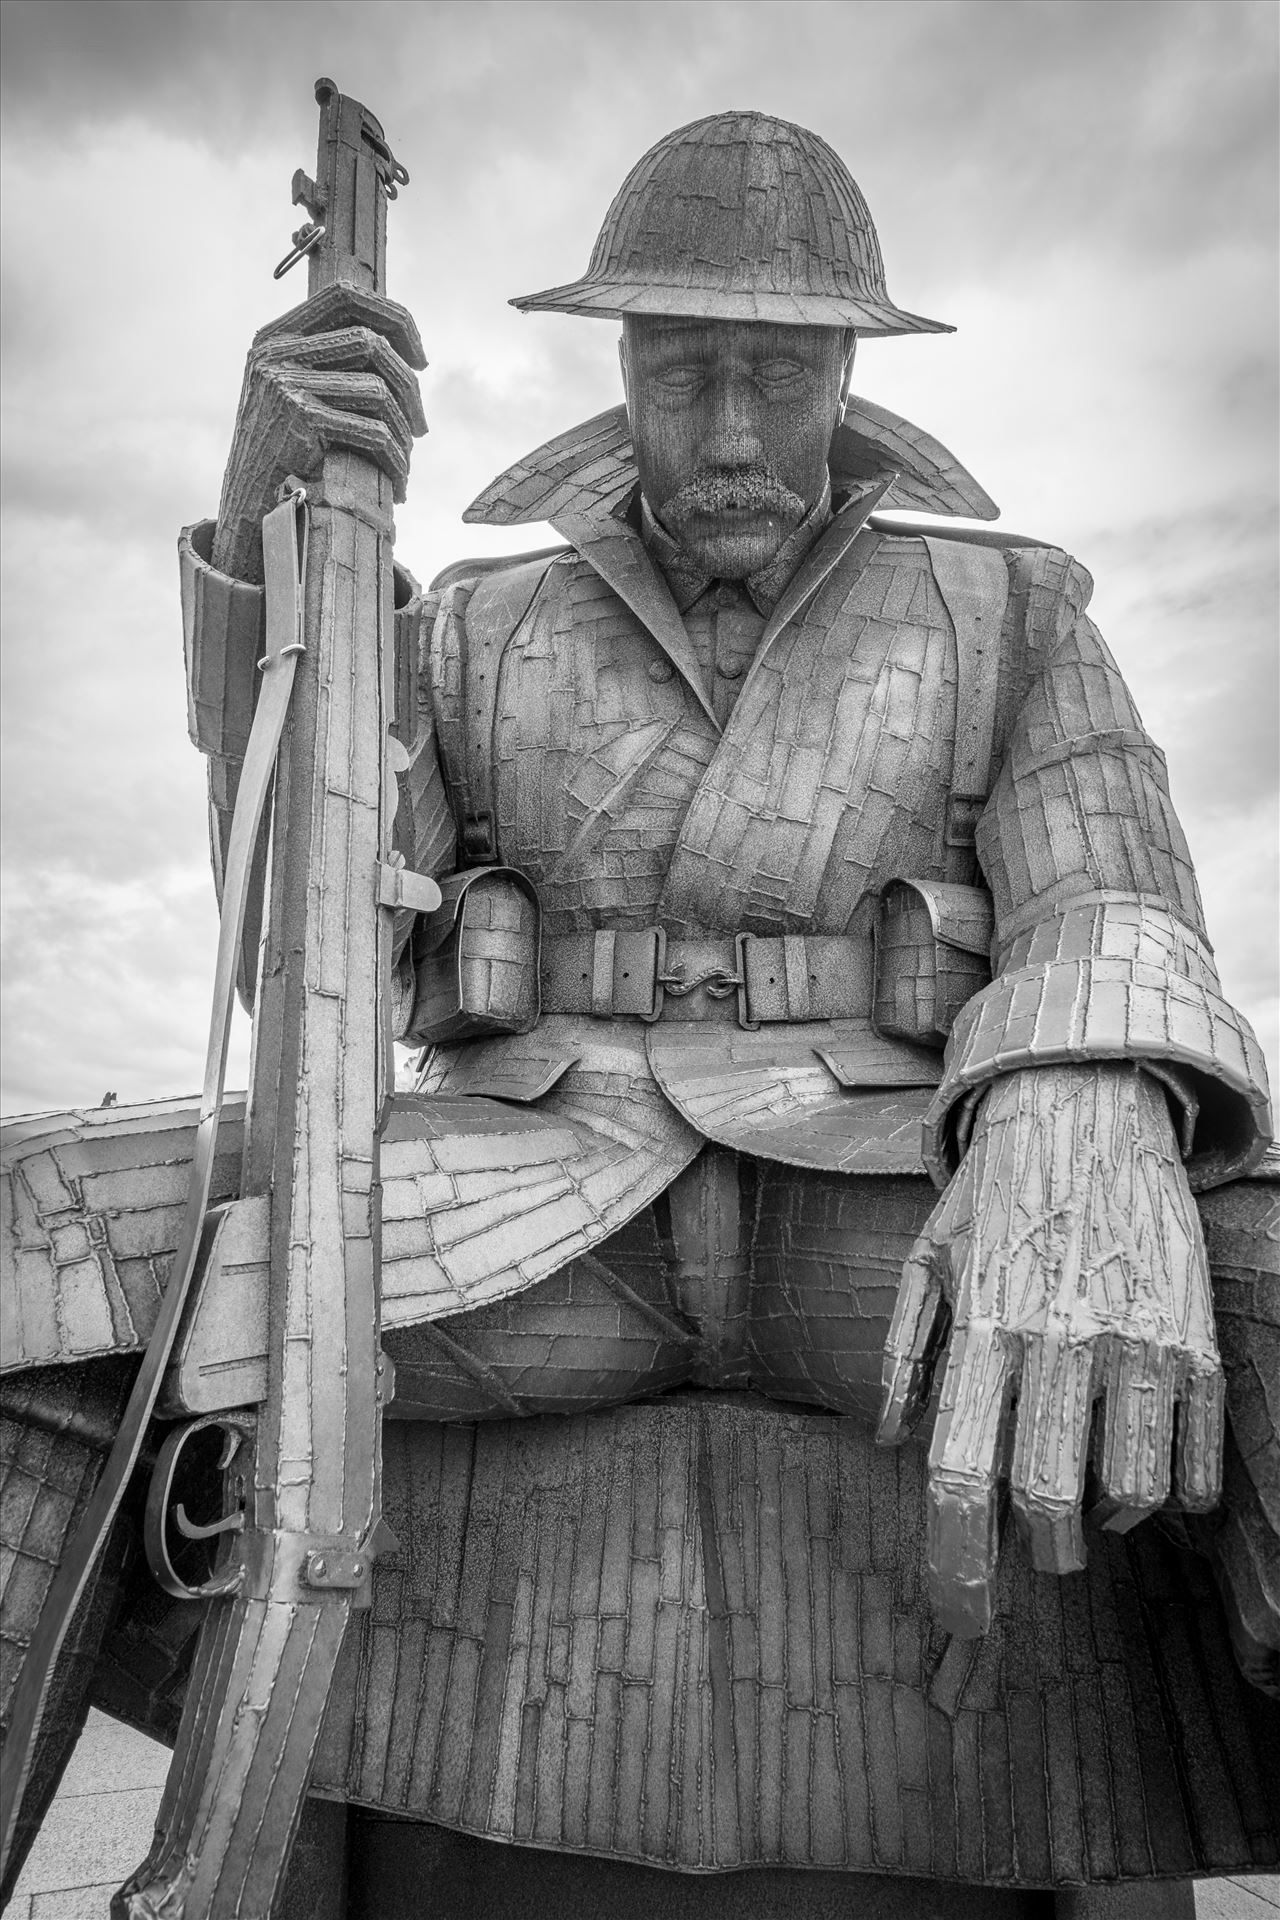 'Tommy' aka 1101 The steel statue weighs 1.2 tonnes, and is 9 feet 5 inches tall. Depicting a WW1 soldier, wearing full uniform, sitting on an ammunition box. Referring to Archetype Tommy Atkins. '1101' refers to the 1st minute of peace in 1918. by Graham Dobson Photography